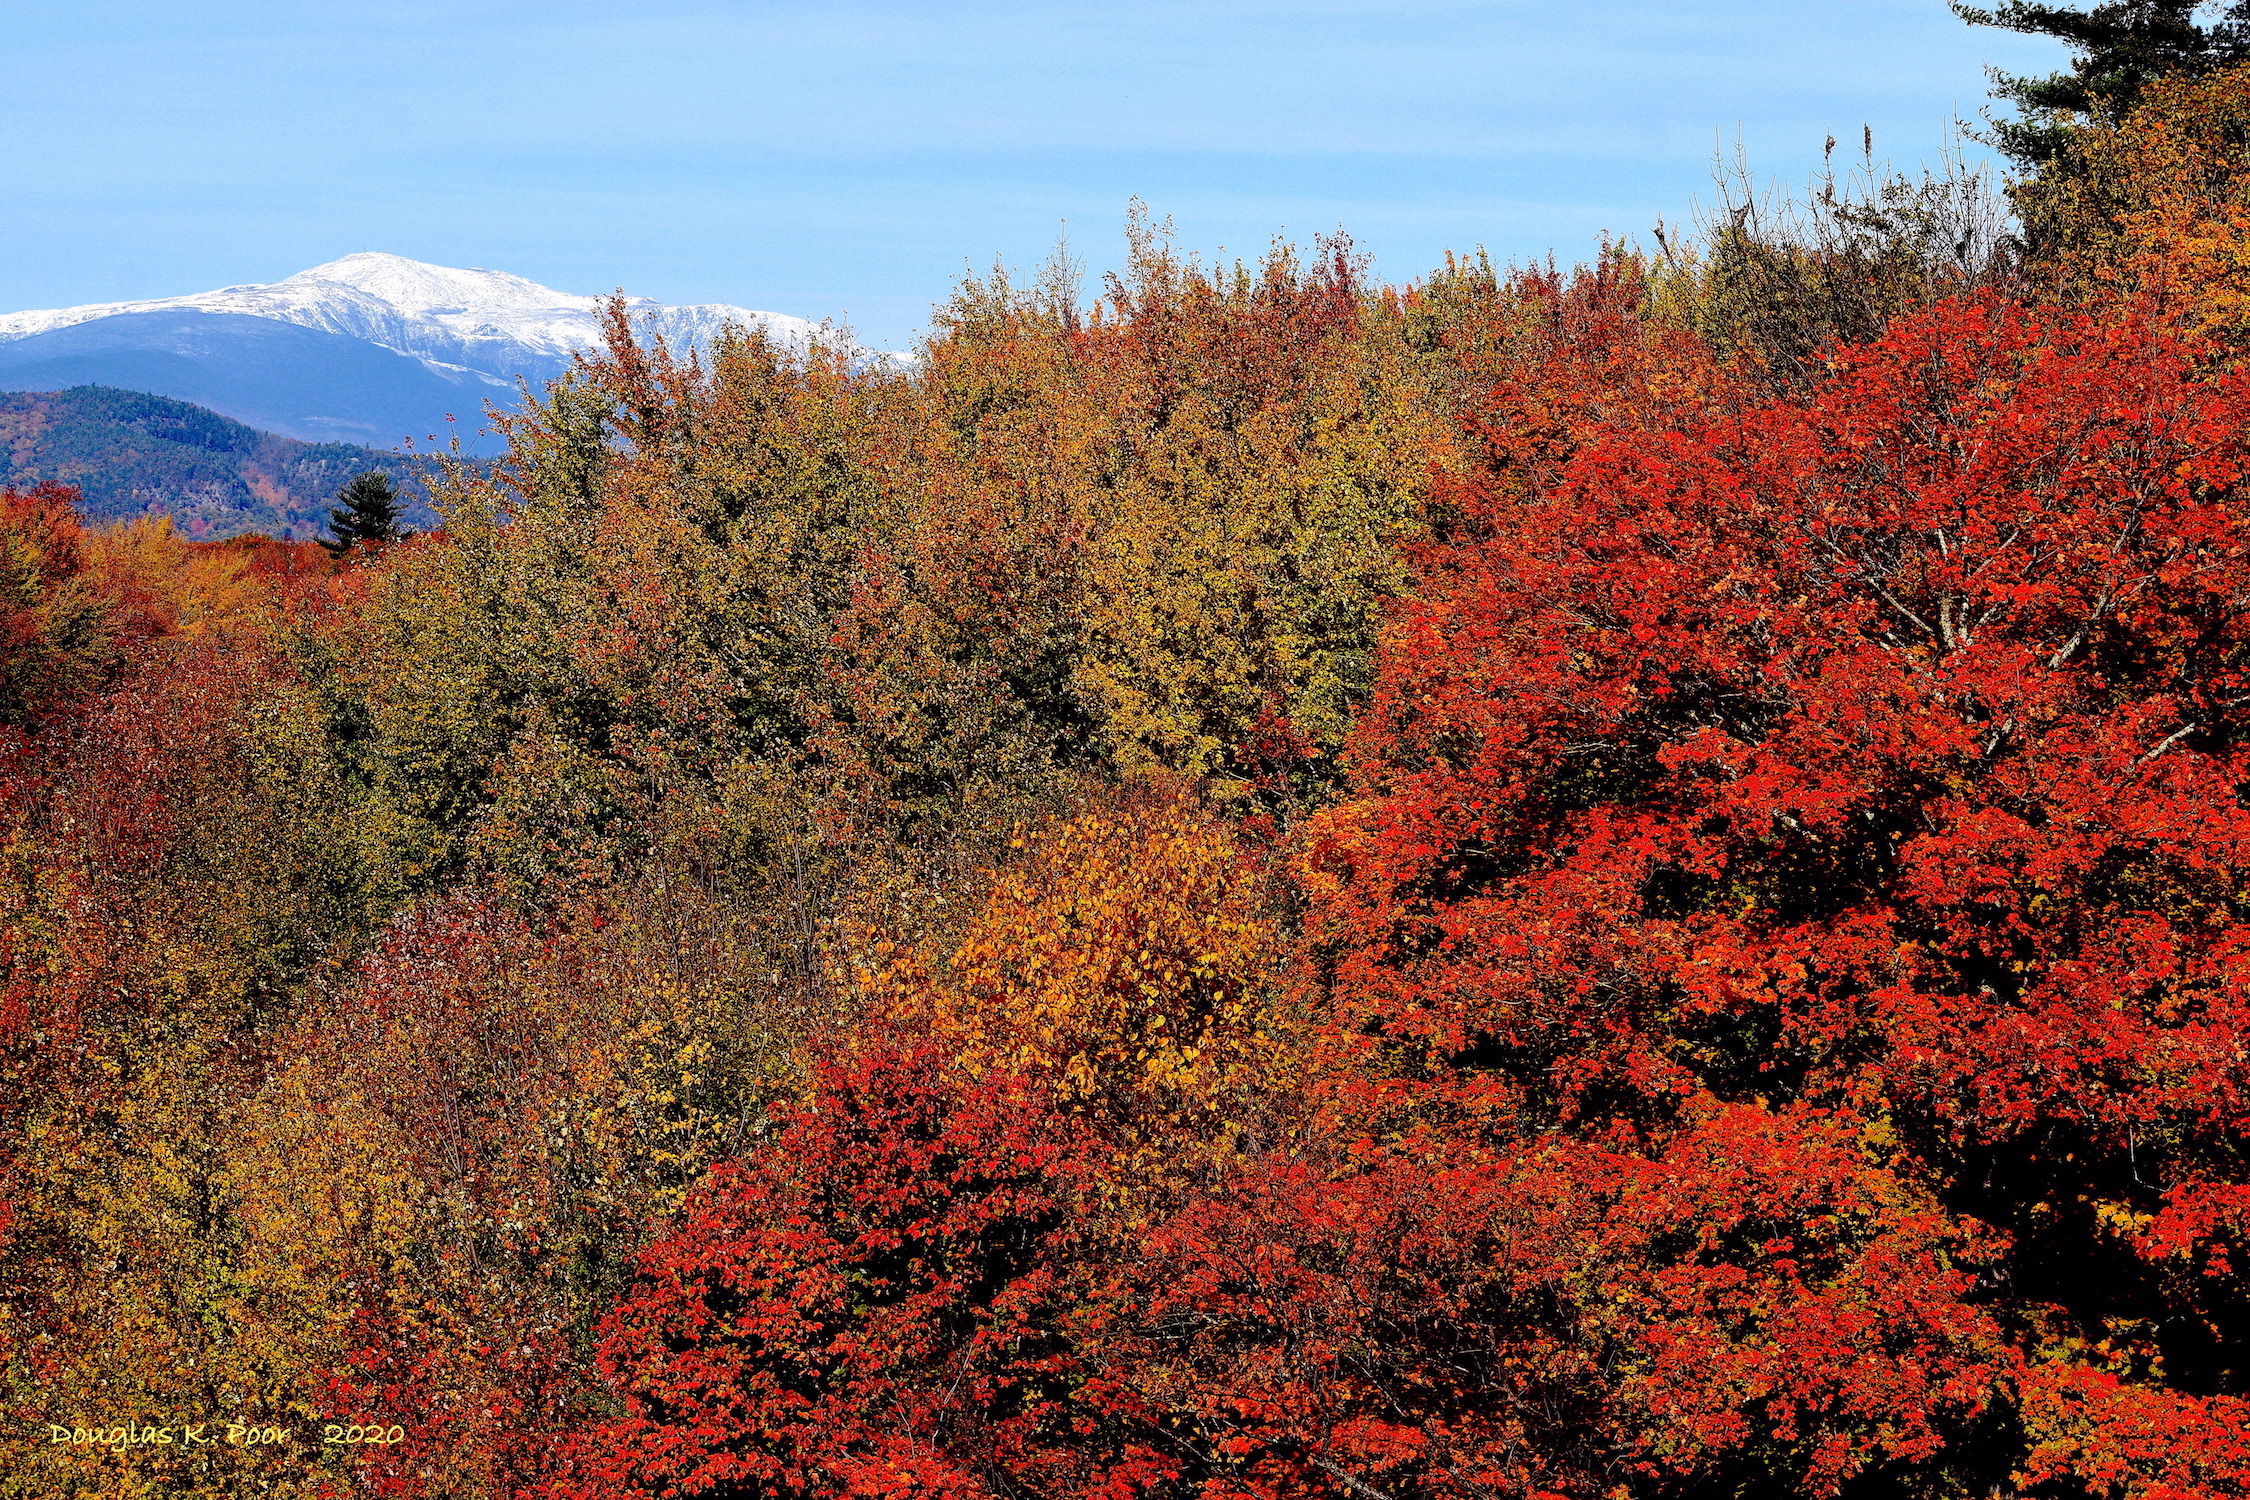 =============FOLIAGE-AND-MT-WASHINGTON-WITH-SNOW-smaller-size================================================================================================================================FOLIAGE-AND-MT-WASHINGTON-WITH-SNOW-smaller-size